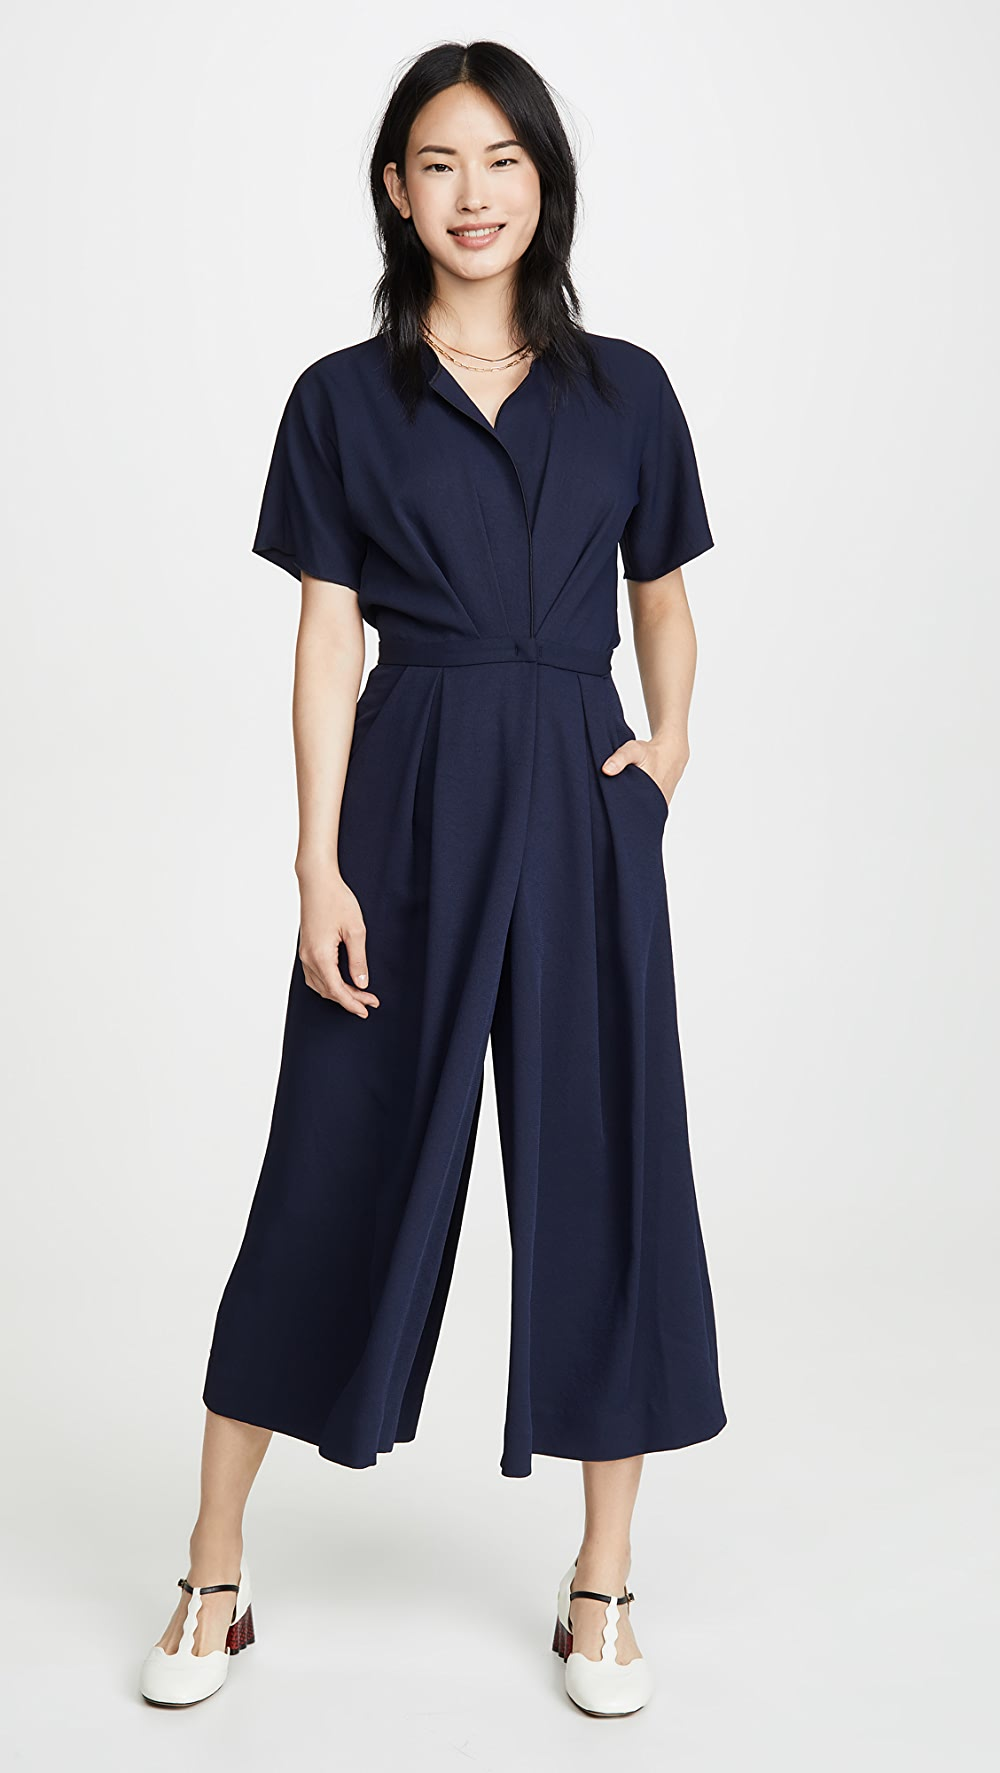 100% True Rachel Comey - Ardent Jumpsuit Rapid Heat Dissipation